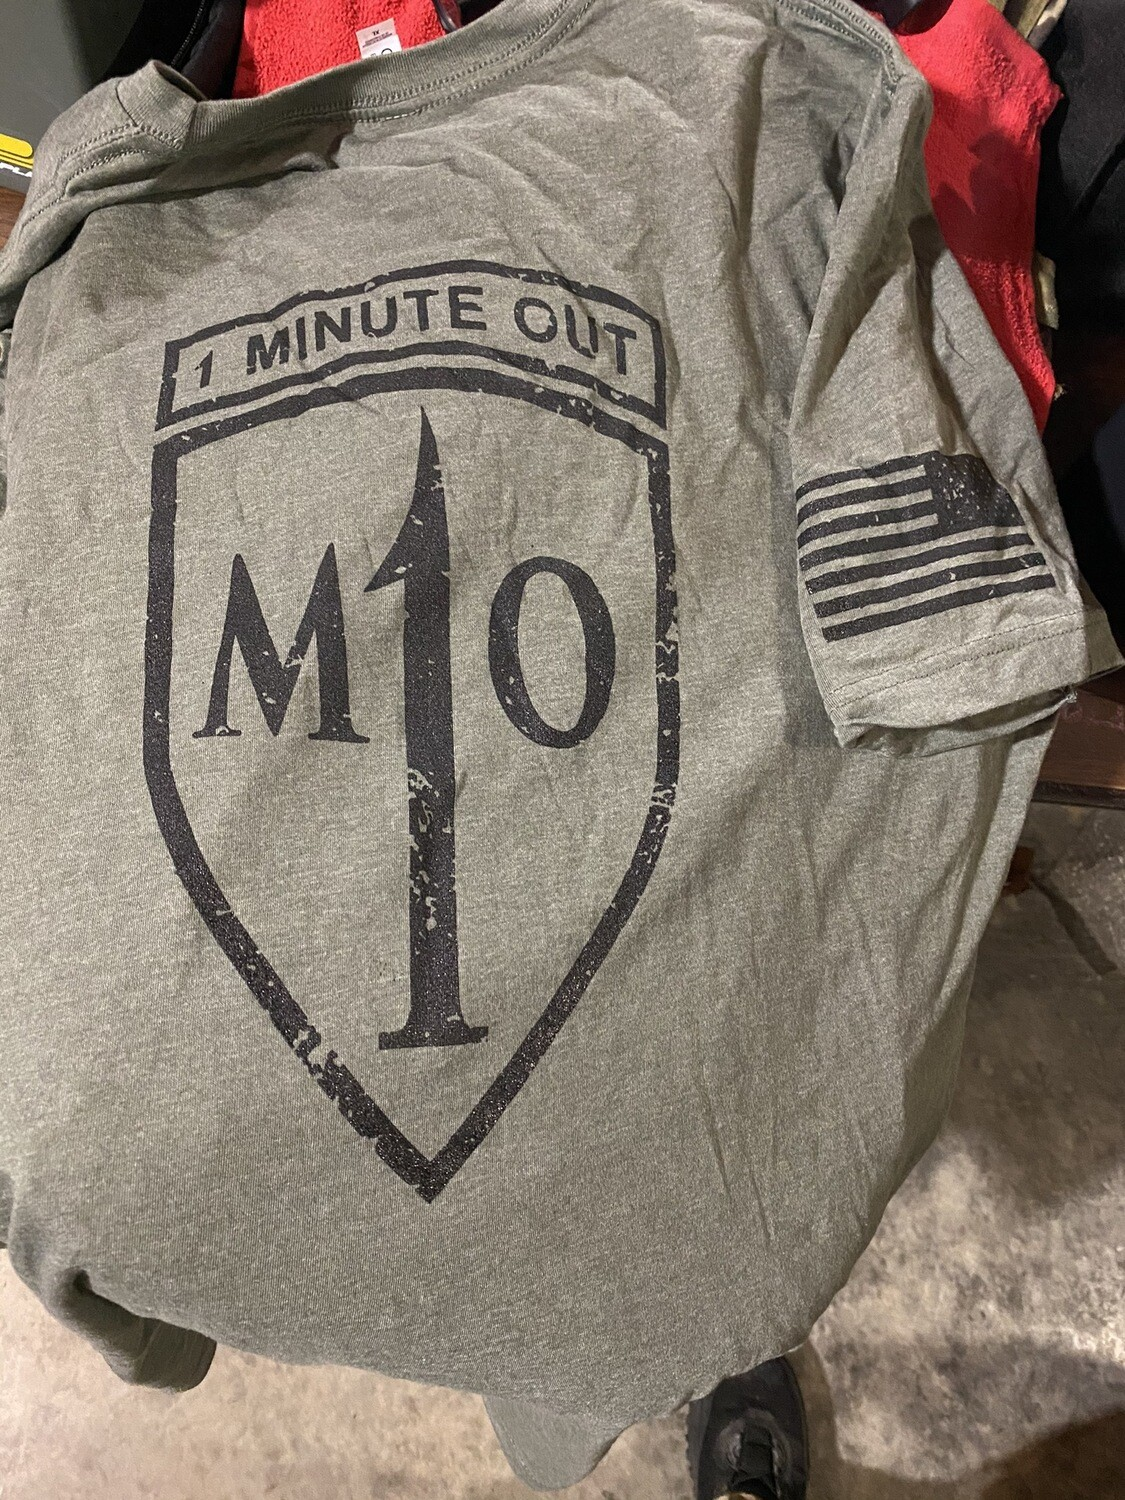 1 Minute Out T-Shirt